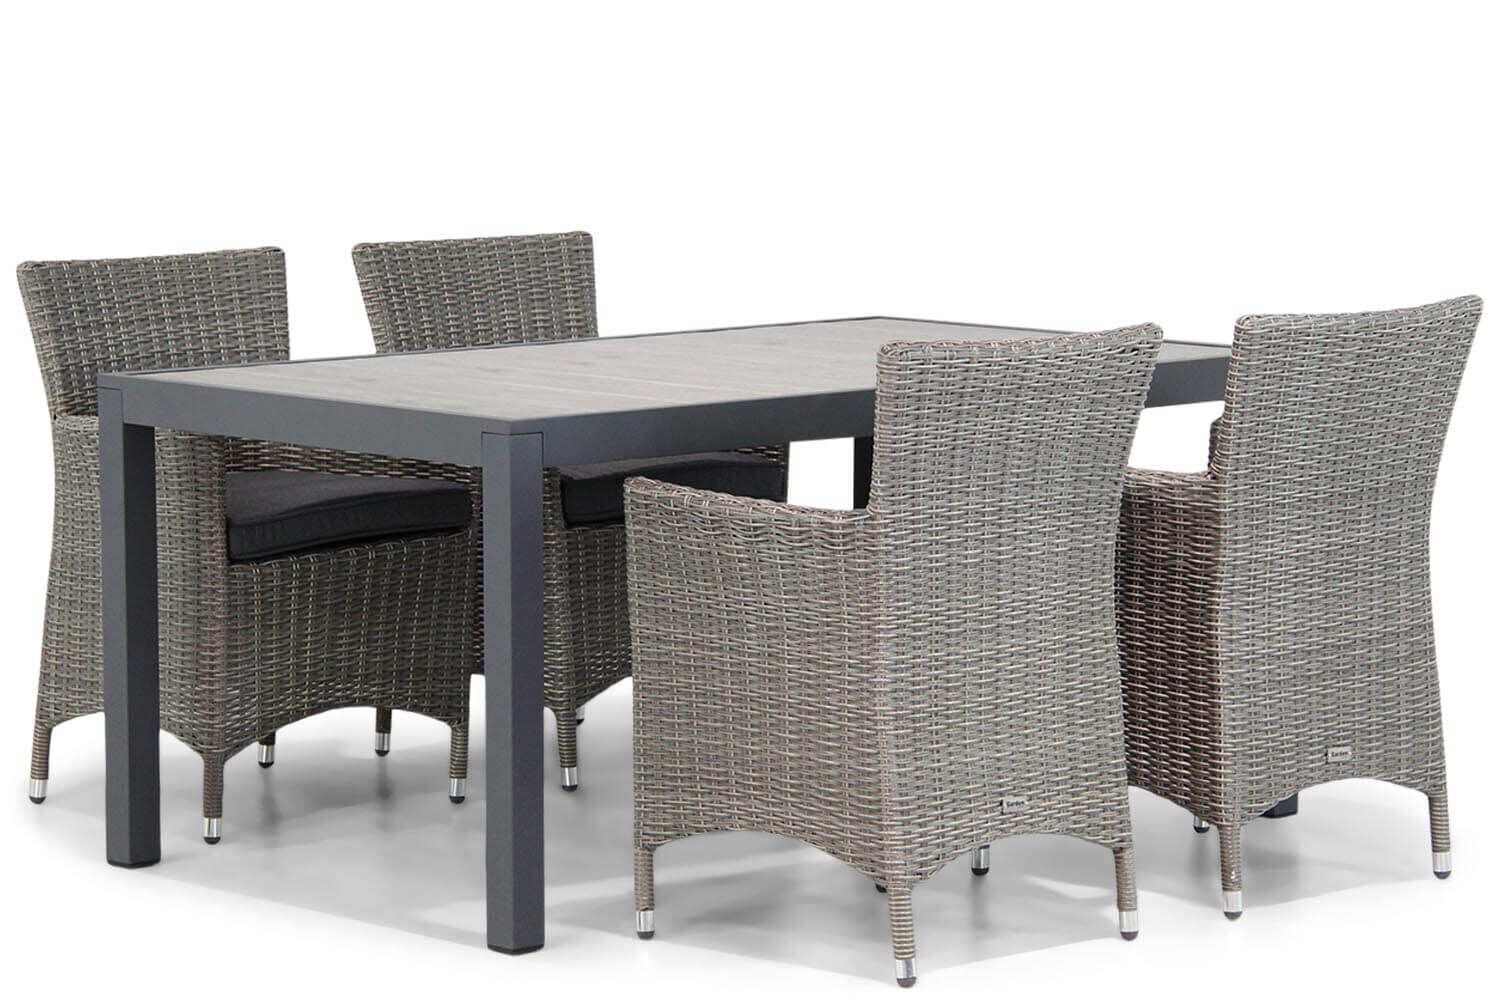 Garden Collections Dublin/Residence 164 cm dining tuinset 5-delig